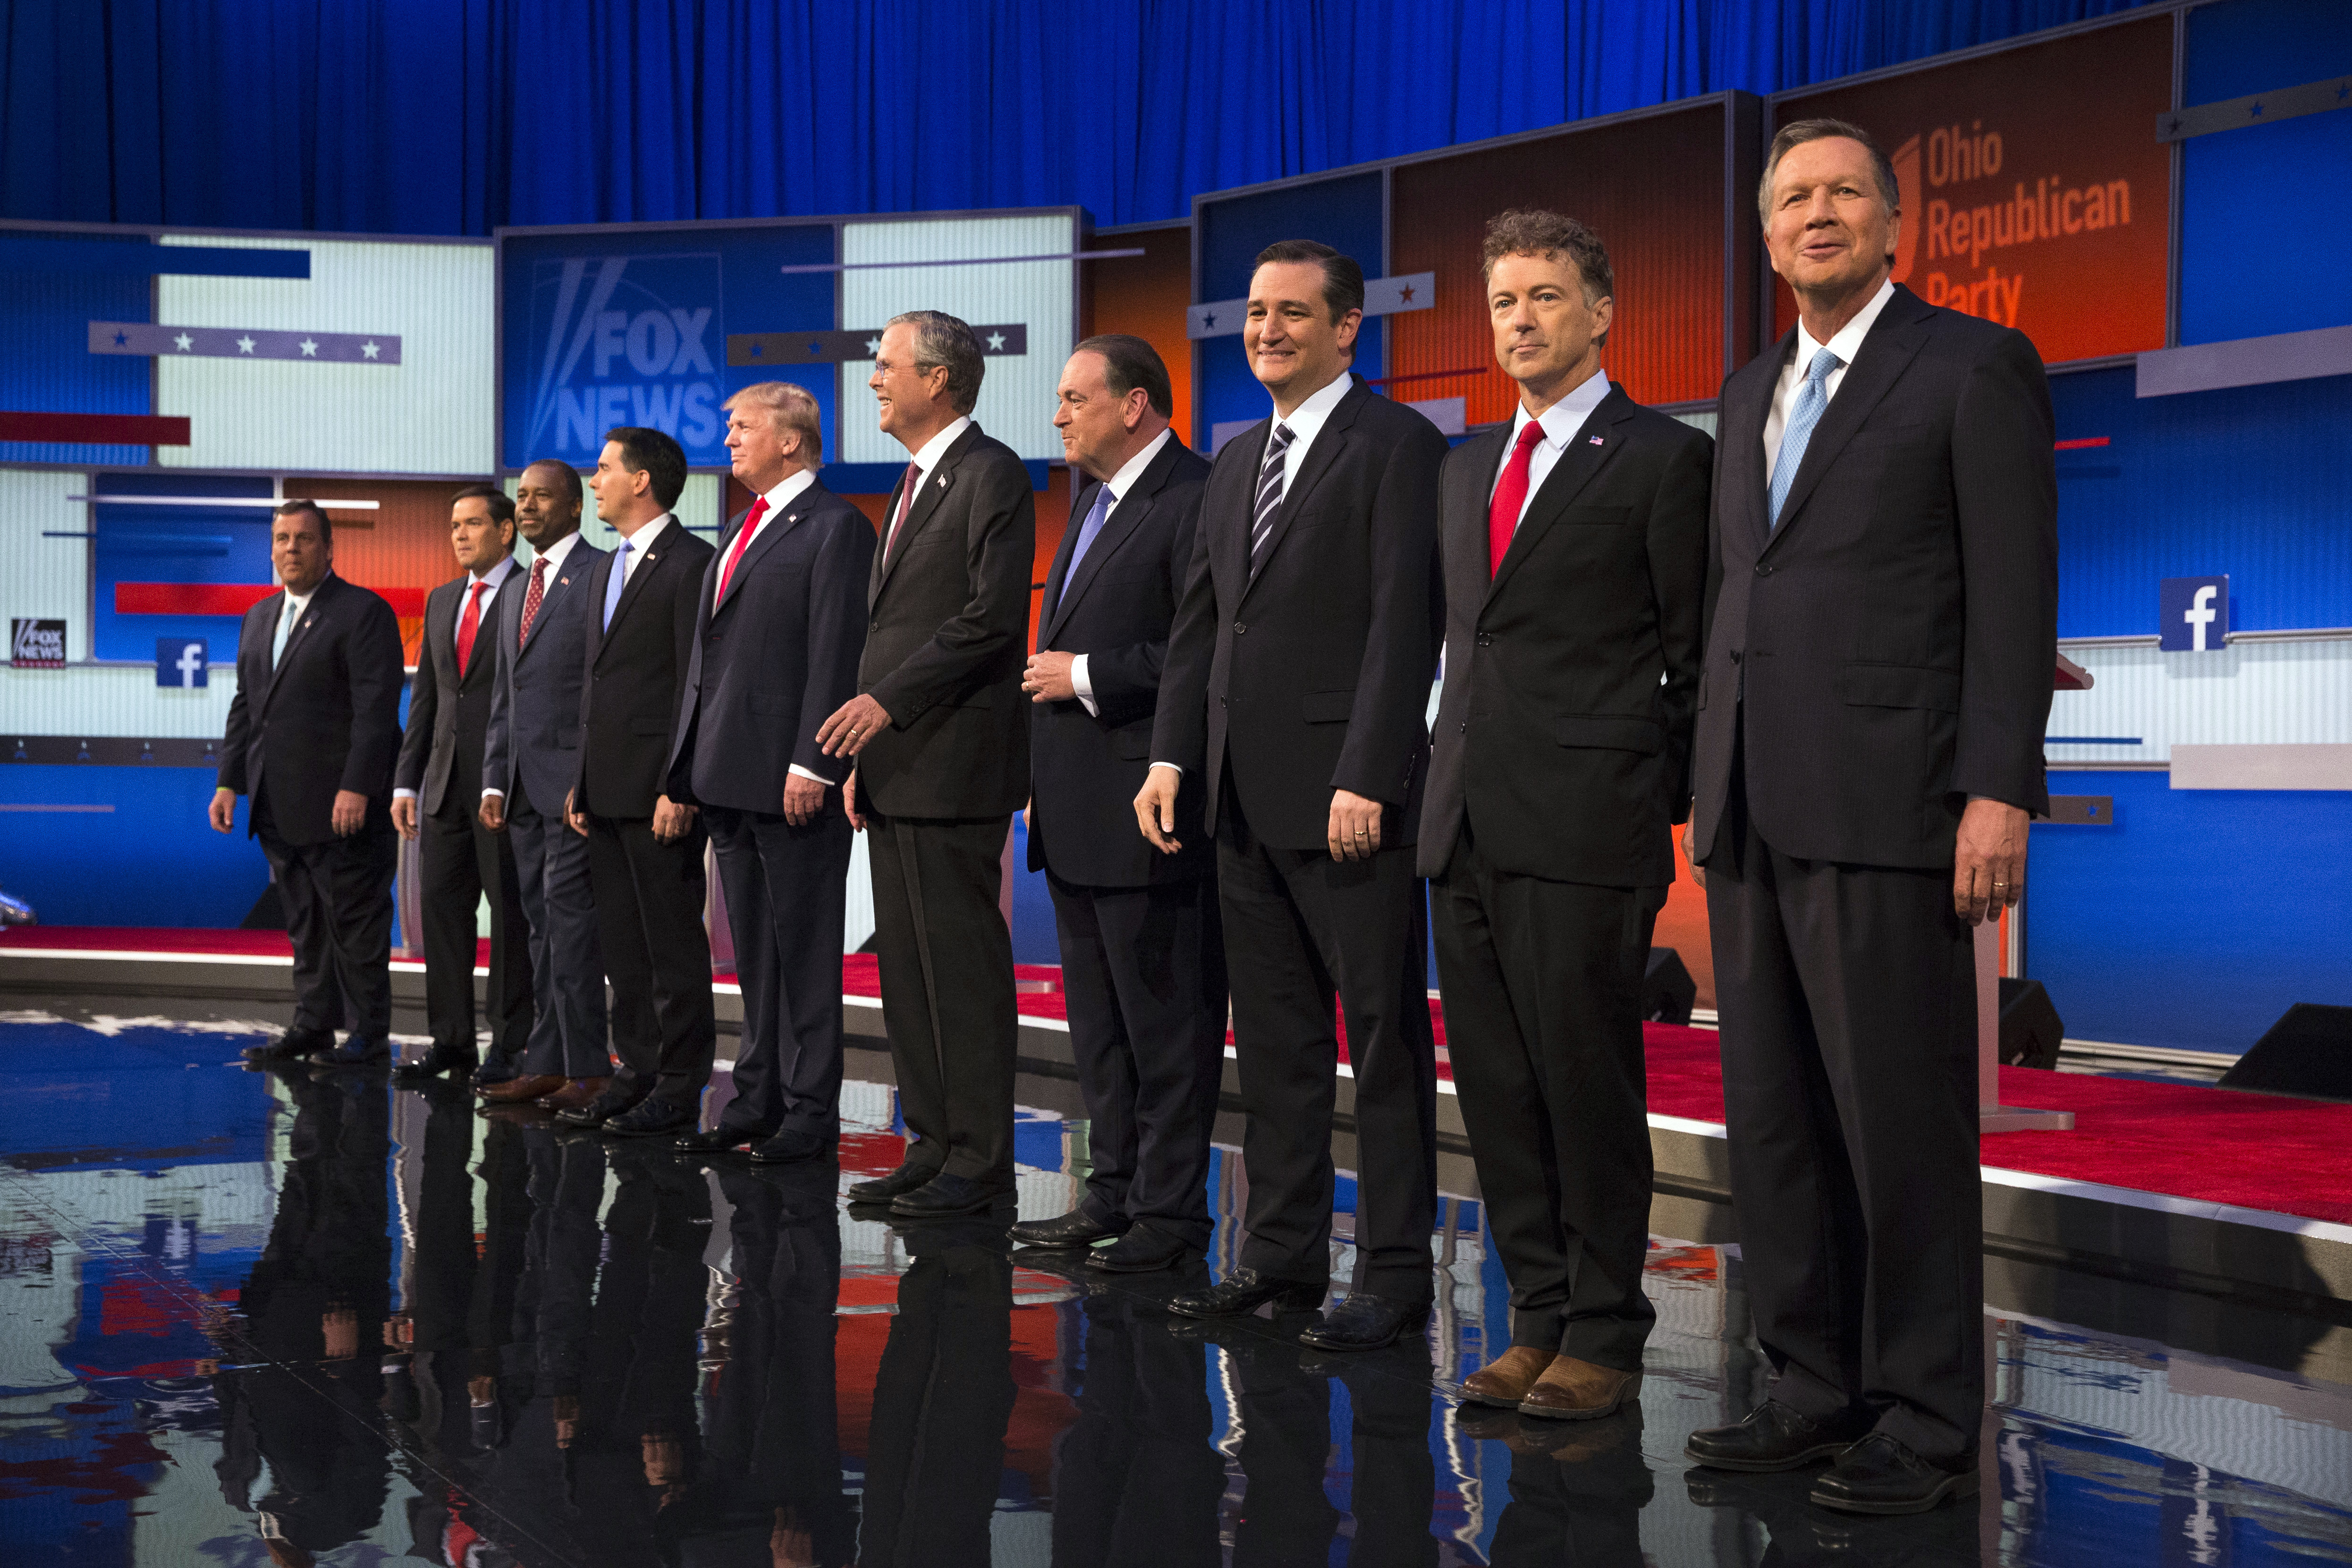 5 Things GOP Candidates Are Complaining About Pre-Debate